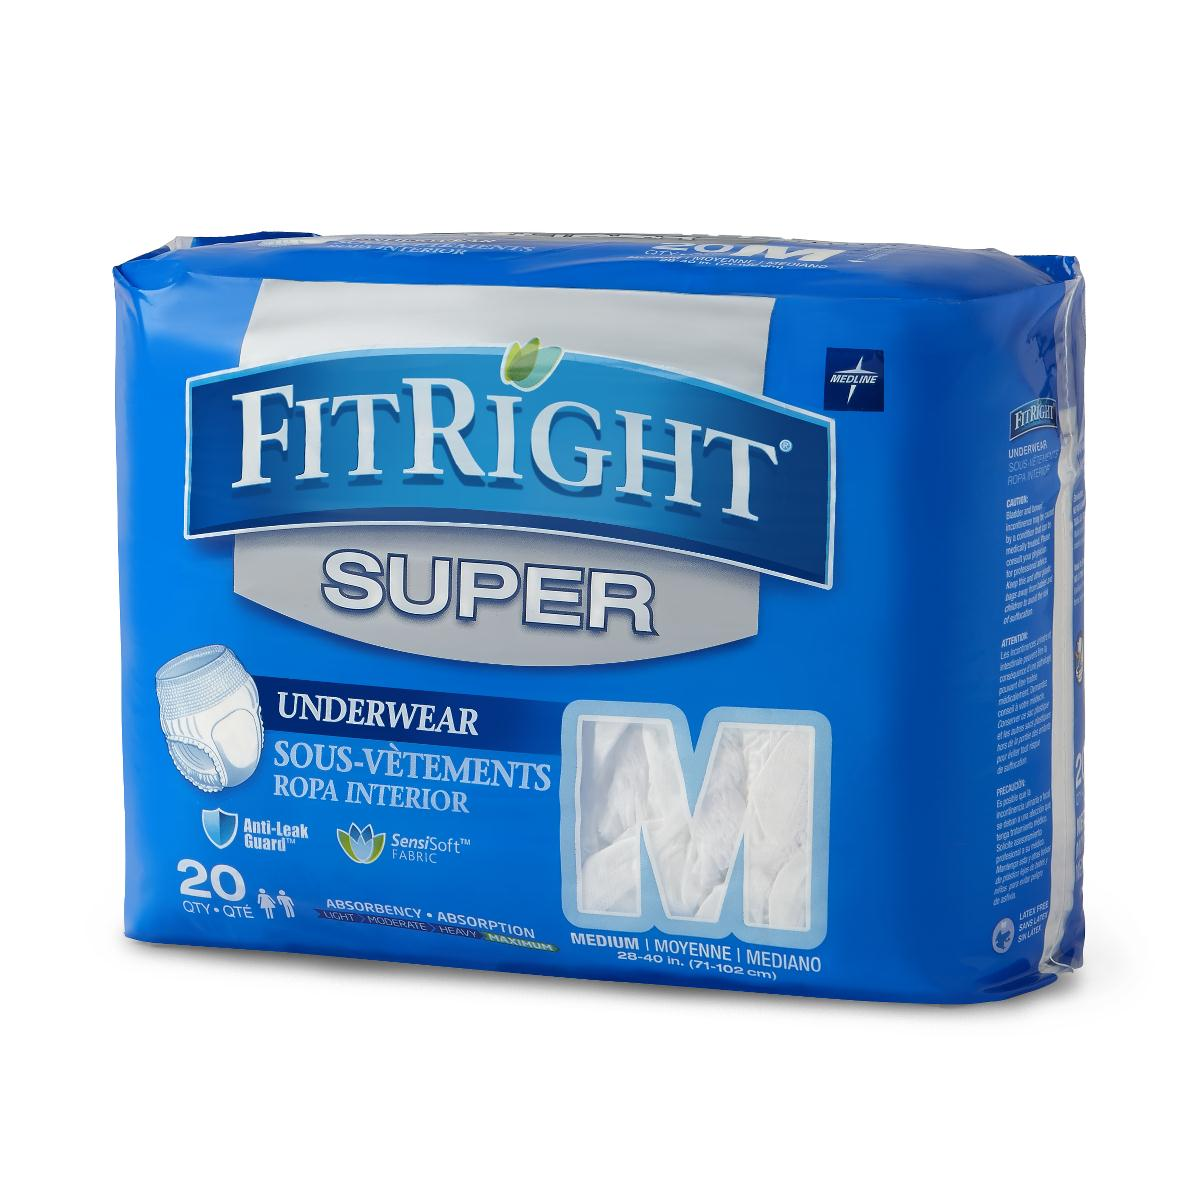 Medline FitRight Super Protective Disposable Underwear, 20 Count(Pack of 4)